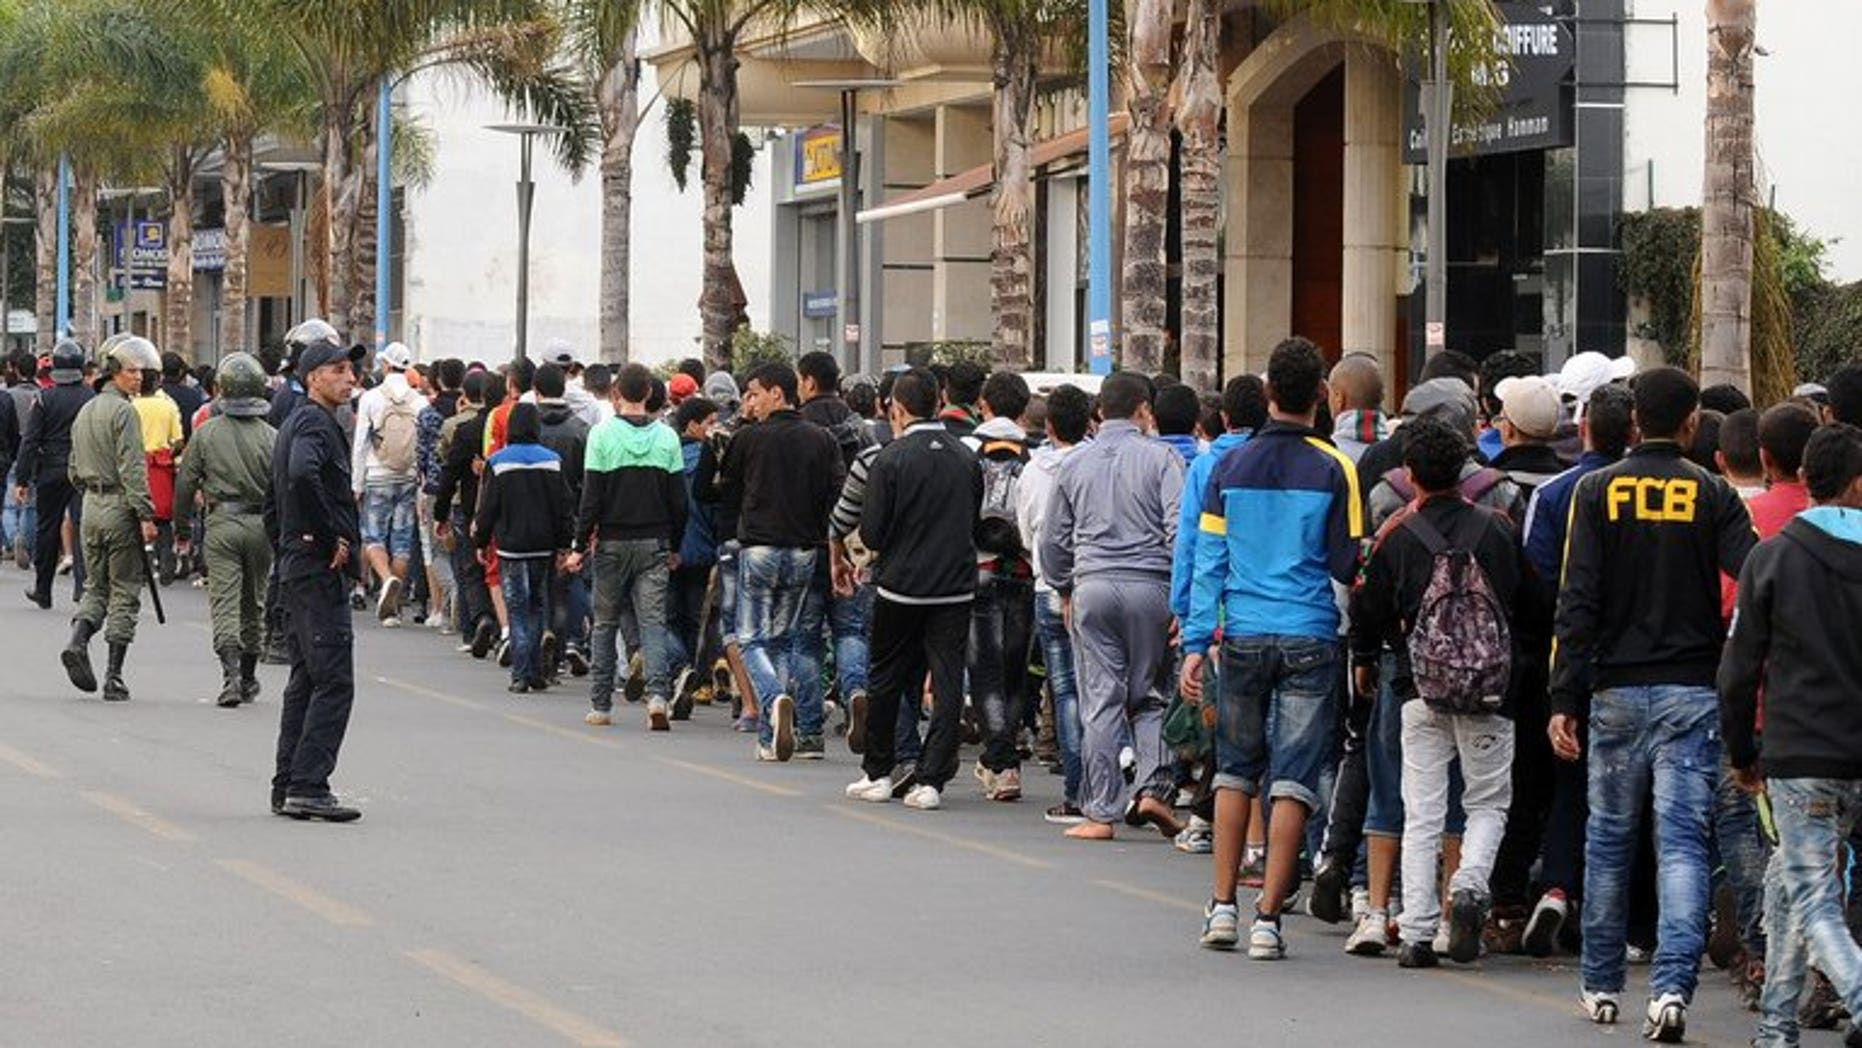 Supporters of Rabat FAR football club arrive at the Mohamed V complex on April 11, 2013 in Casablanca. A Moroccan court handed more than 130 people accused of football hooliganism before a match in Casablanca sentences of up to three years in prison, a judicial source said on Friday.